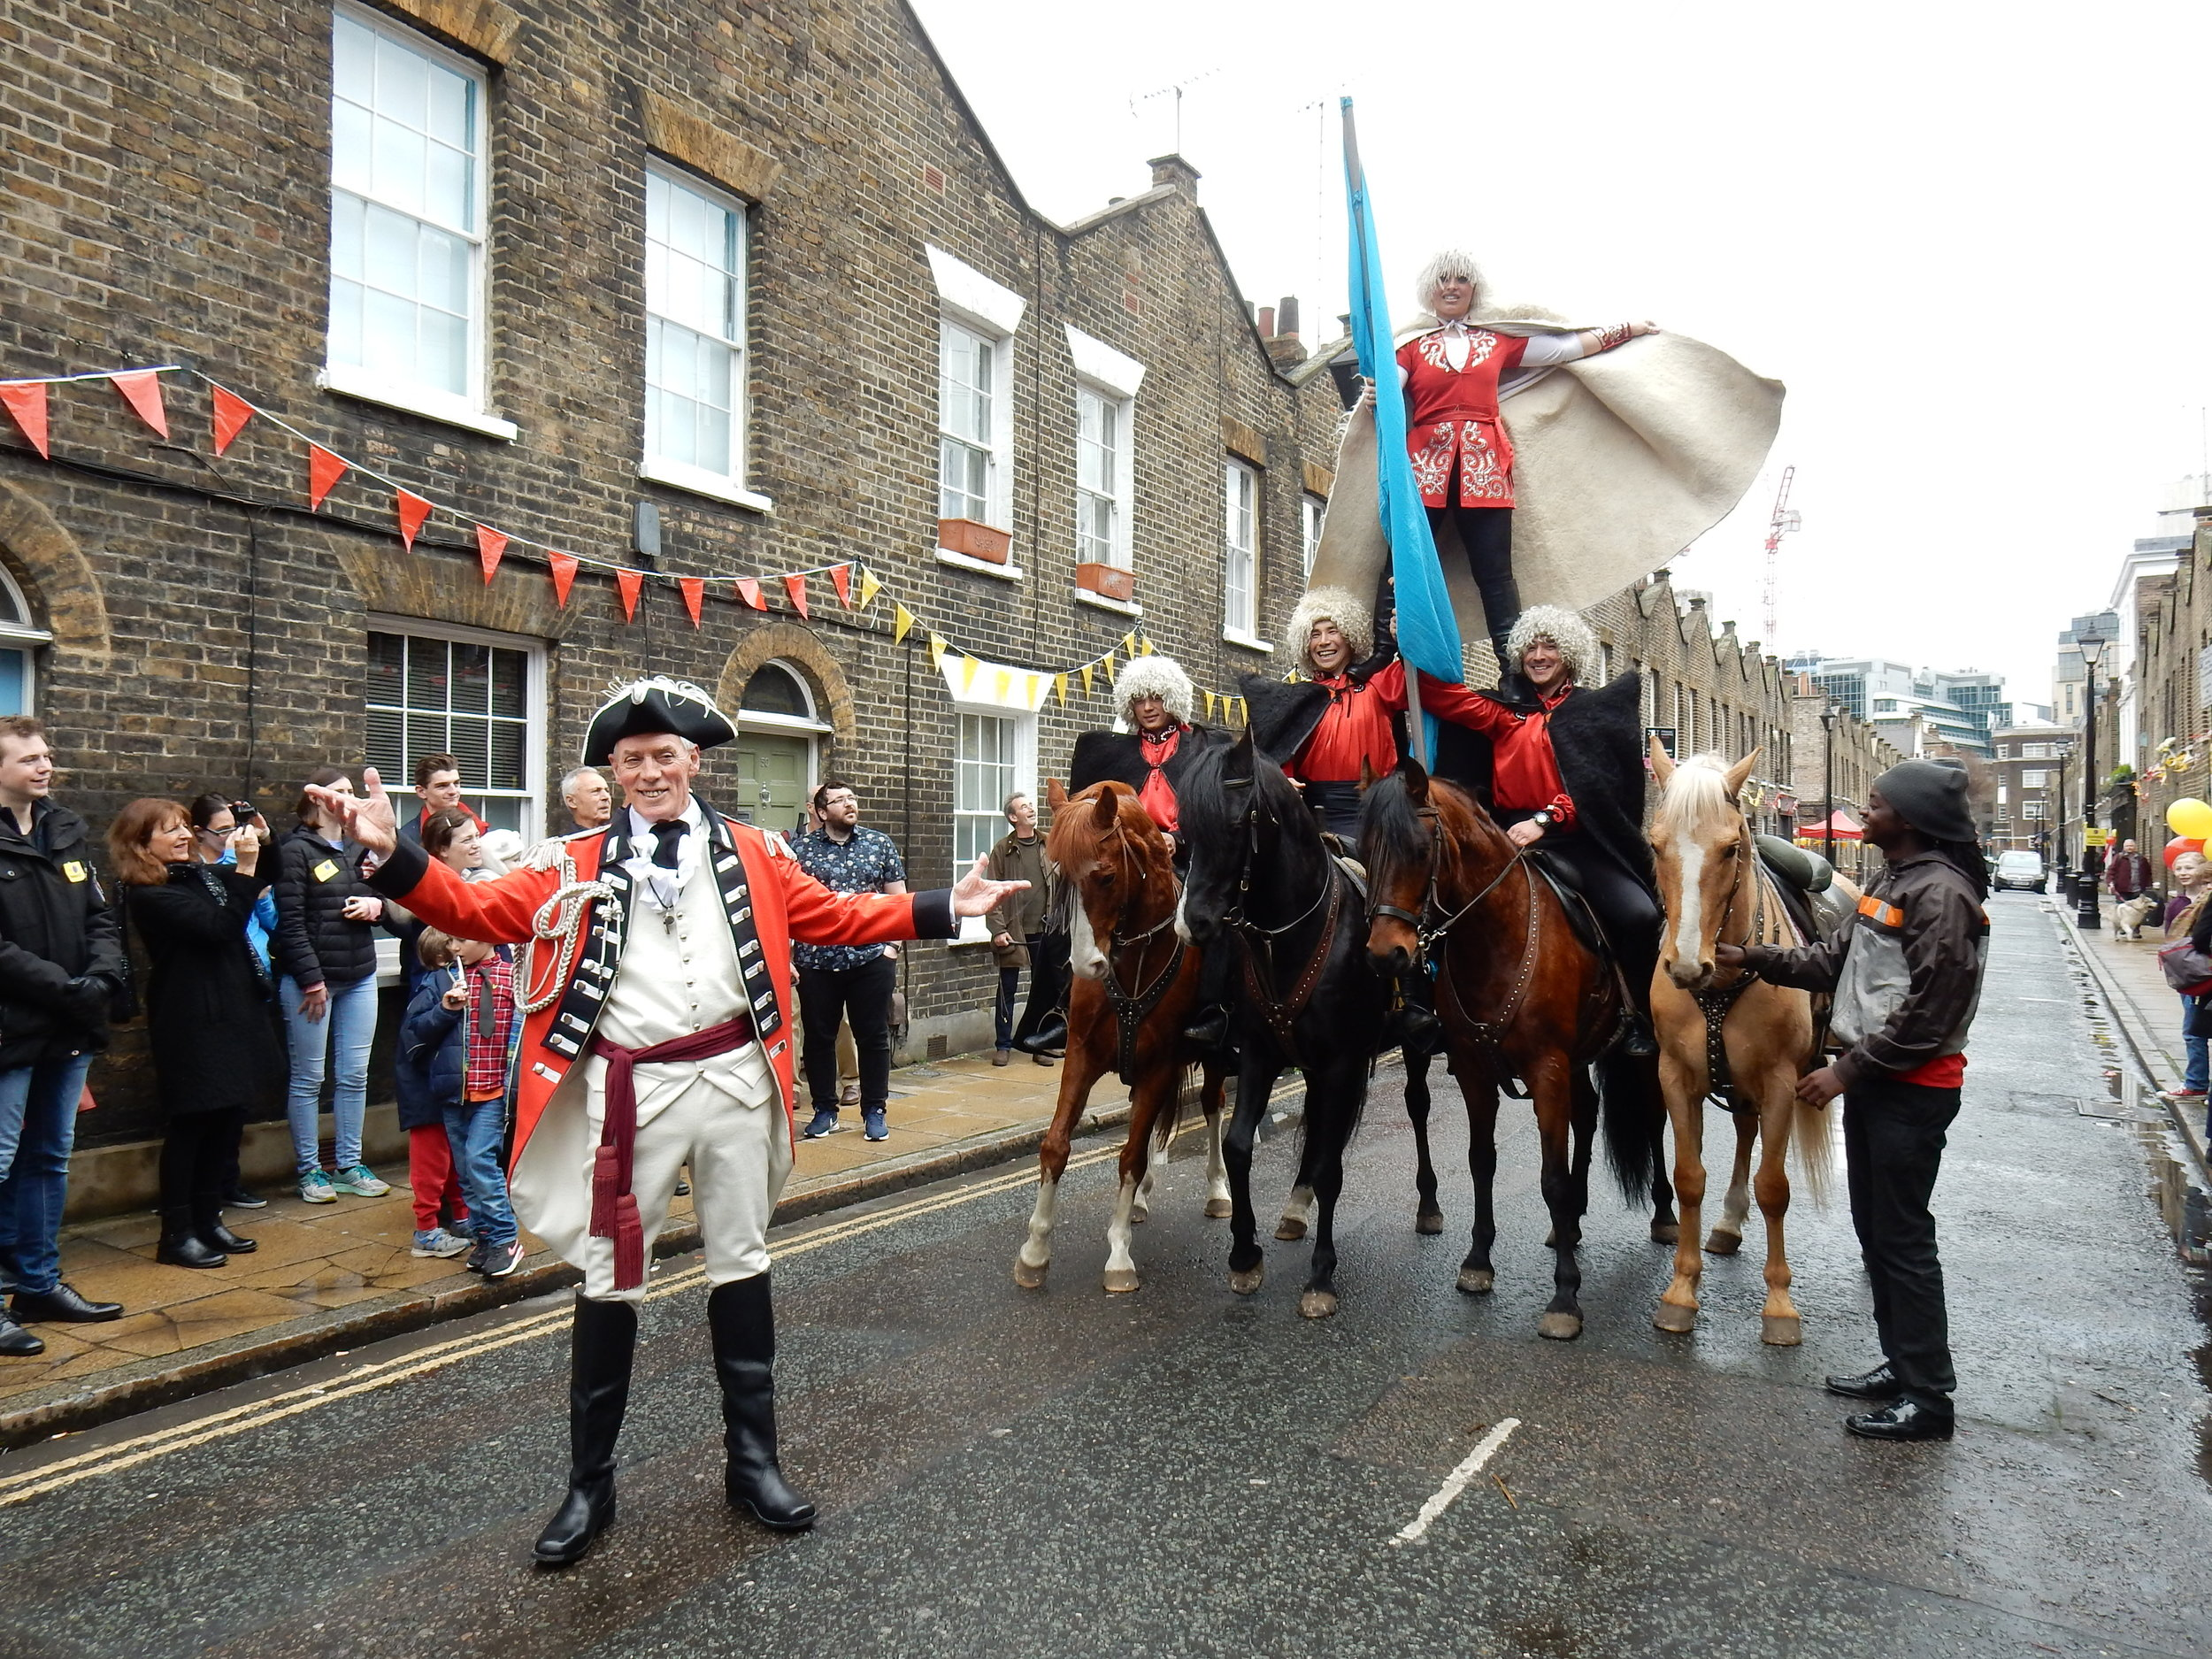 Easter Monday 2018.  Roupell St, Waterloo - the site of Astley's Ha'penny Hatch. Chris Barltrop as Philip Astley, accompanied by the Khadikov Riders from Zippo's Circus.